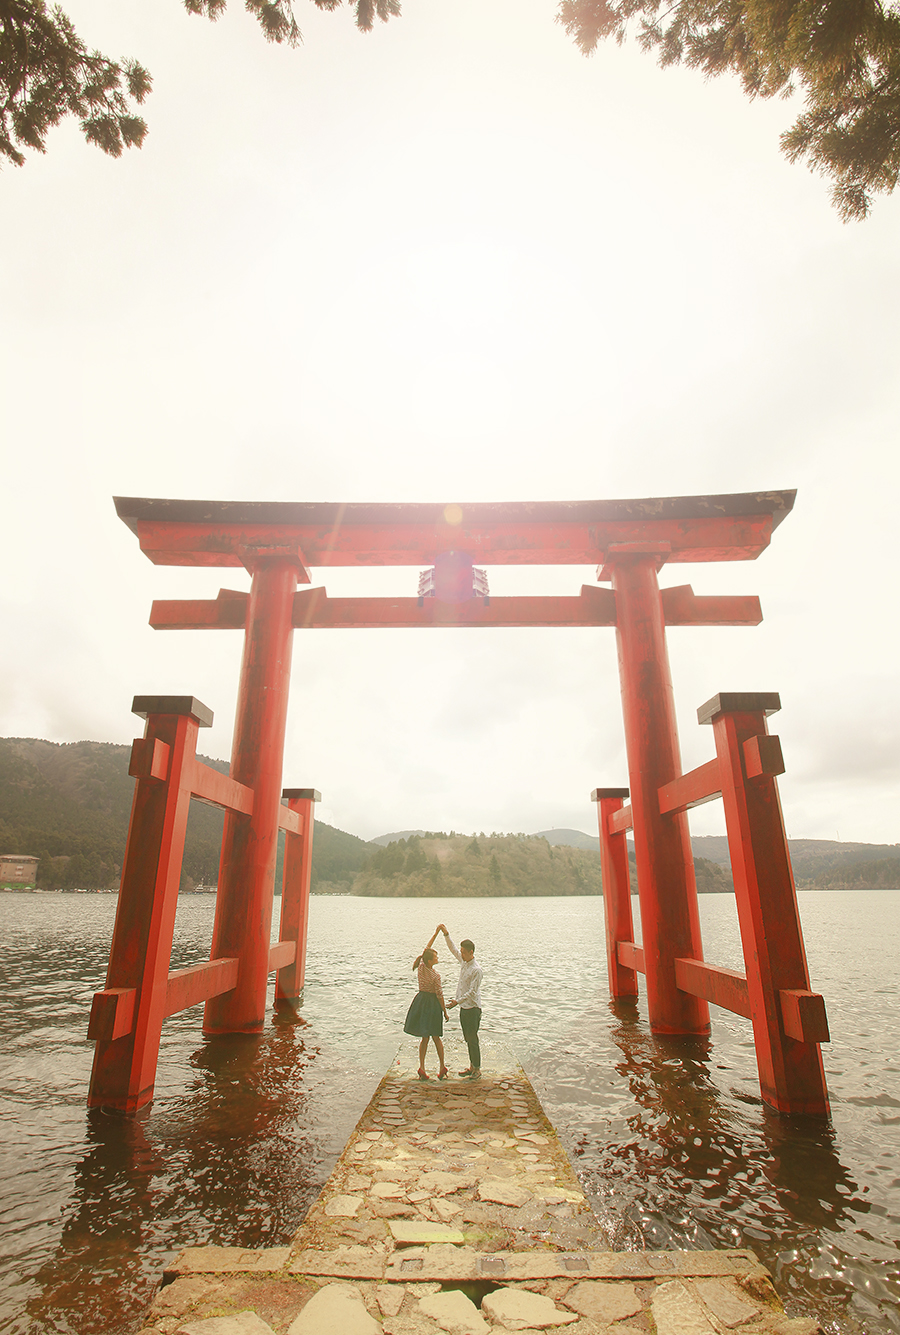 tokyo hakone japan spring sakura . engagement wedding photography by kurt ahs . ns + eu . 0395.jpg